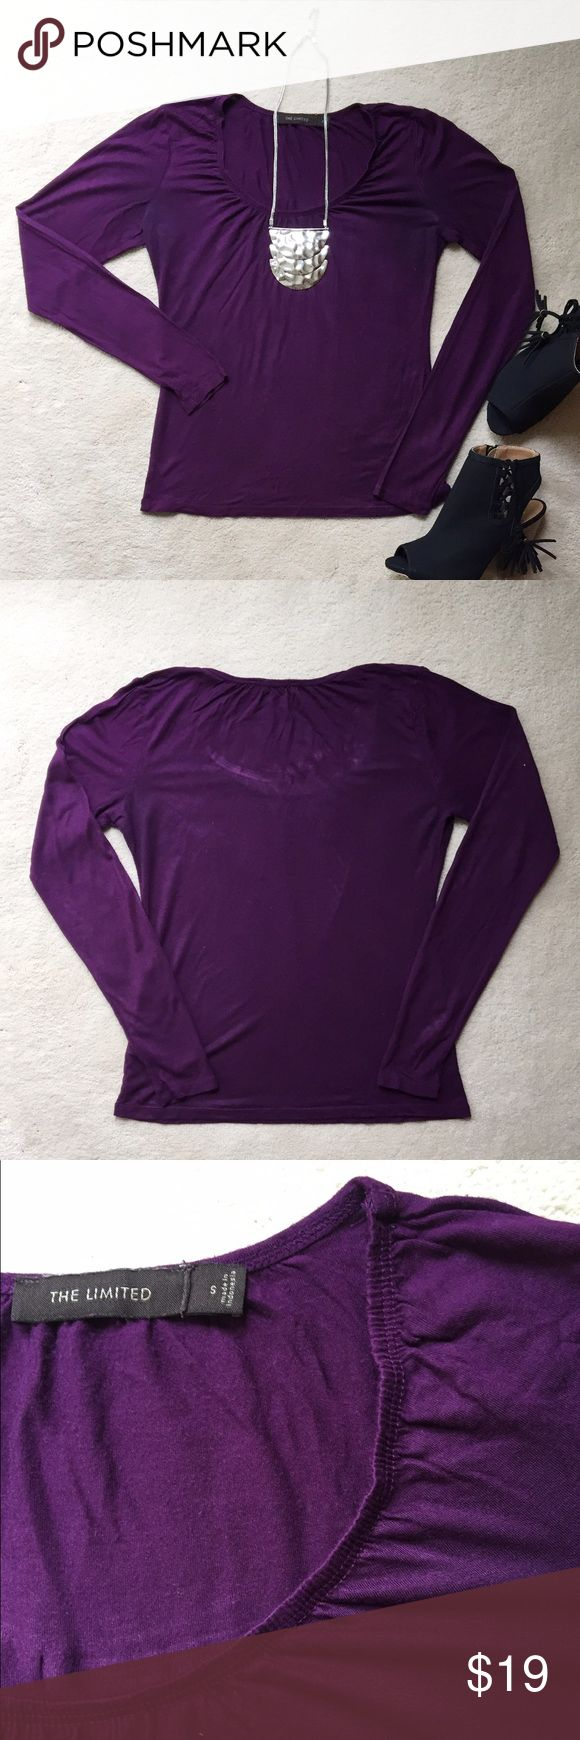 The Limited Purple Long Sleeve Top Spice up your basics! This long sleeve top by The Limited has a decorative elastic neckline. It is made of 100% modal. Bundle and save 30%! The Limited Tops